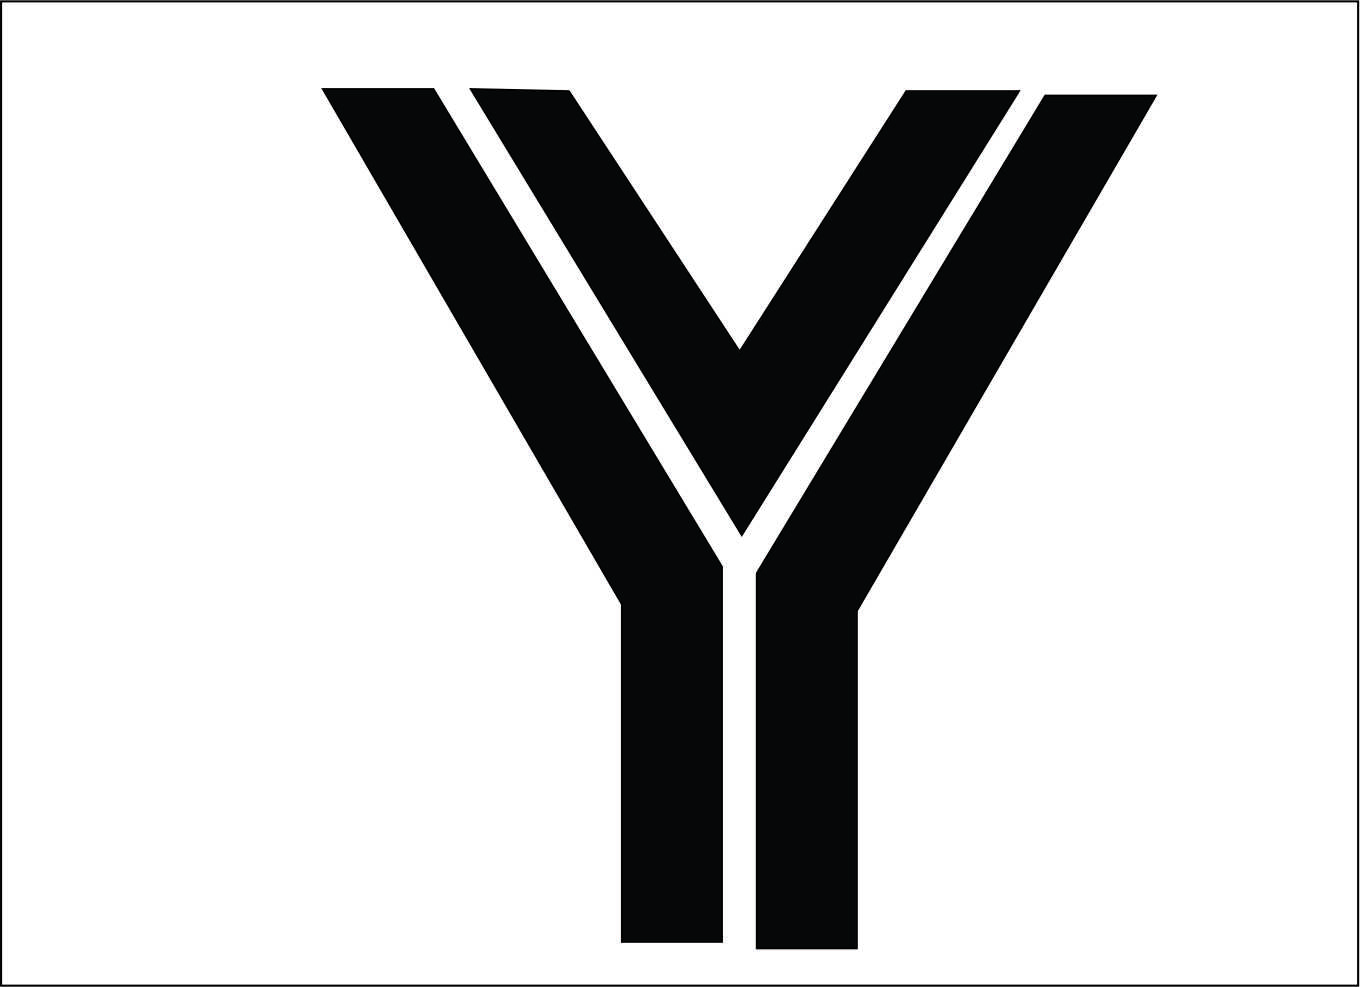 Cool Letter Y Designs Whatfontis